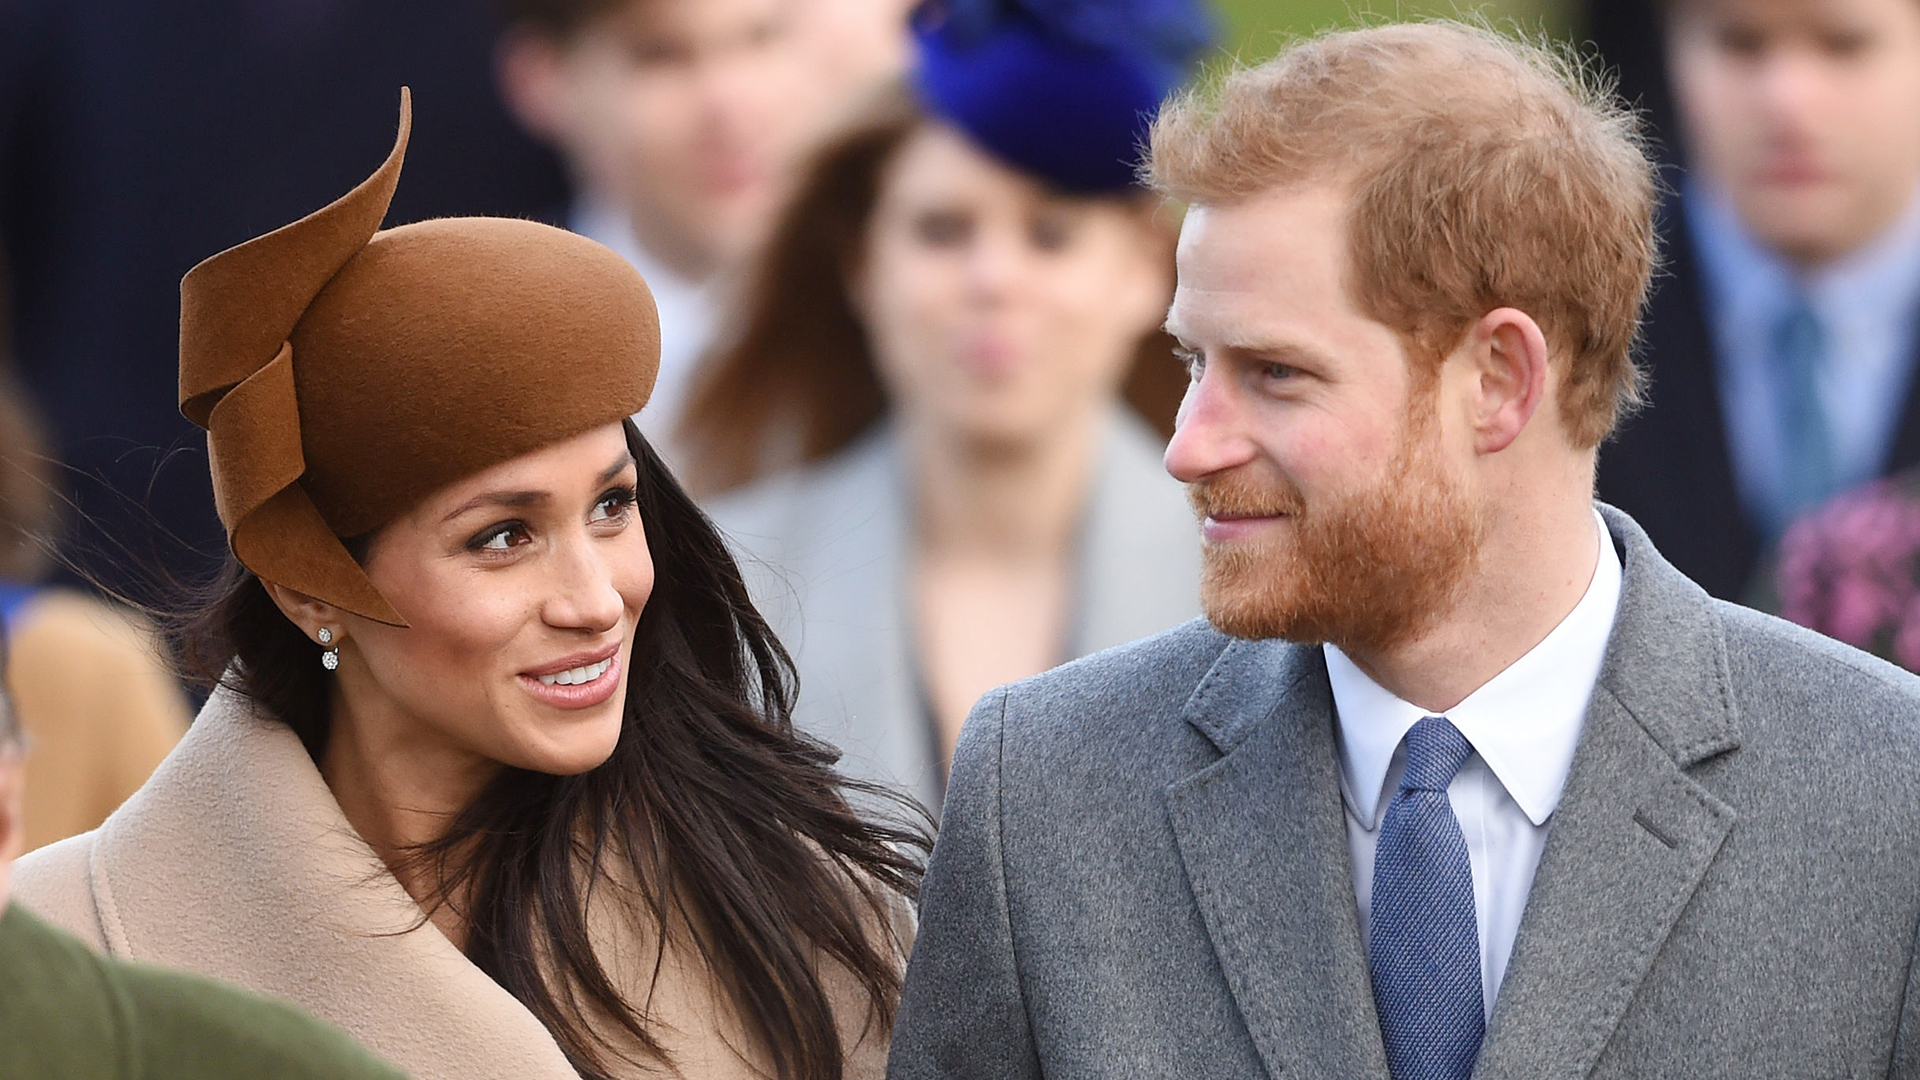 Prince Harry and Meghan Markles Christmas Sounds Like It Was Picture-Perfect Fun Prince Harry and Meghan Markles Christmas Sounds Like It Was Picture-Perfect Fun new picture